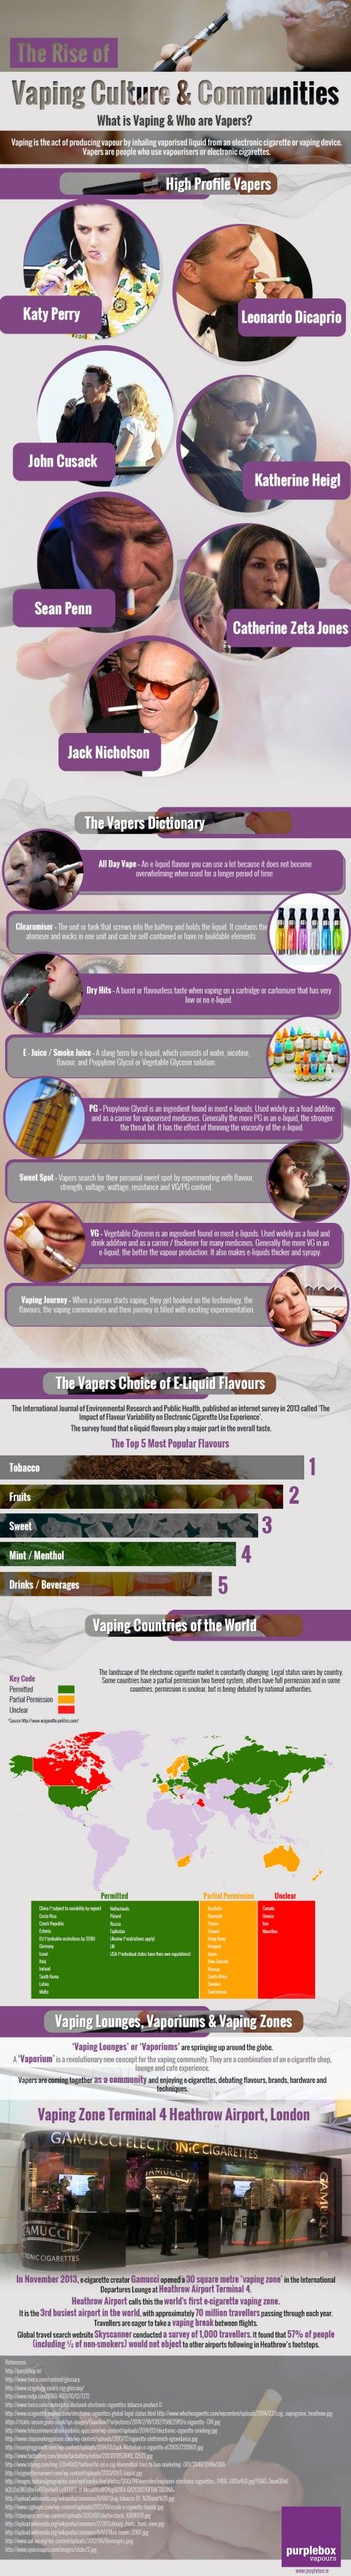 Rise of the #vaping culture, Check how peoples habits are changing toward vaping from smoking, its good to quit smoking and start #Vaping